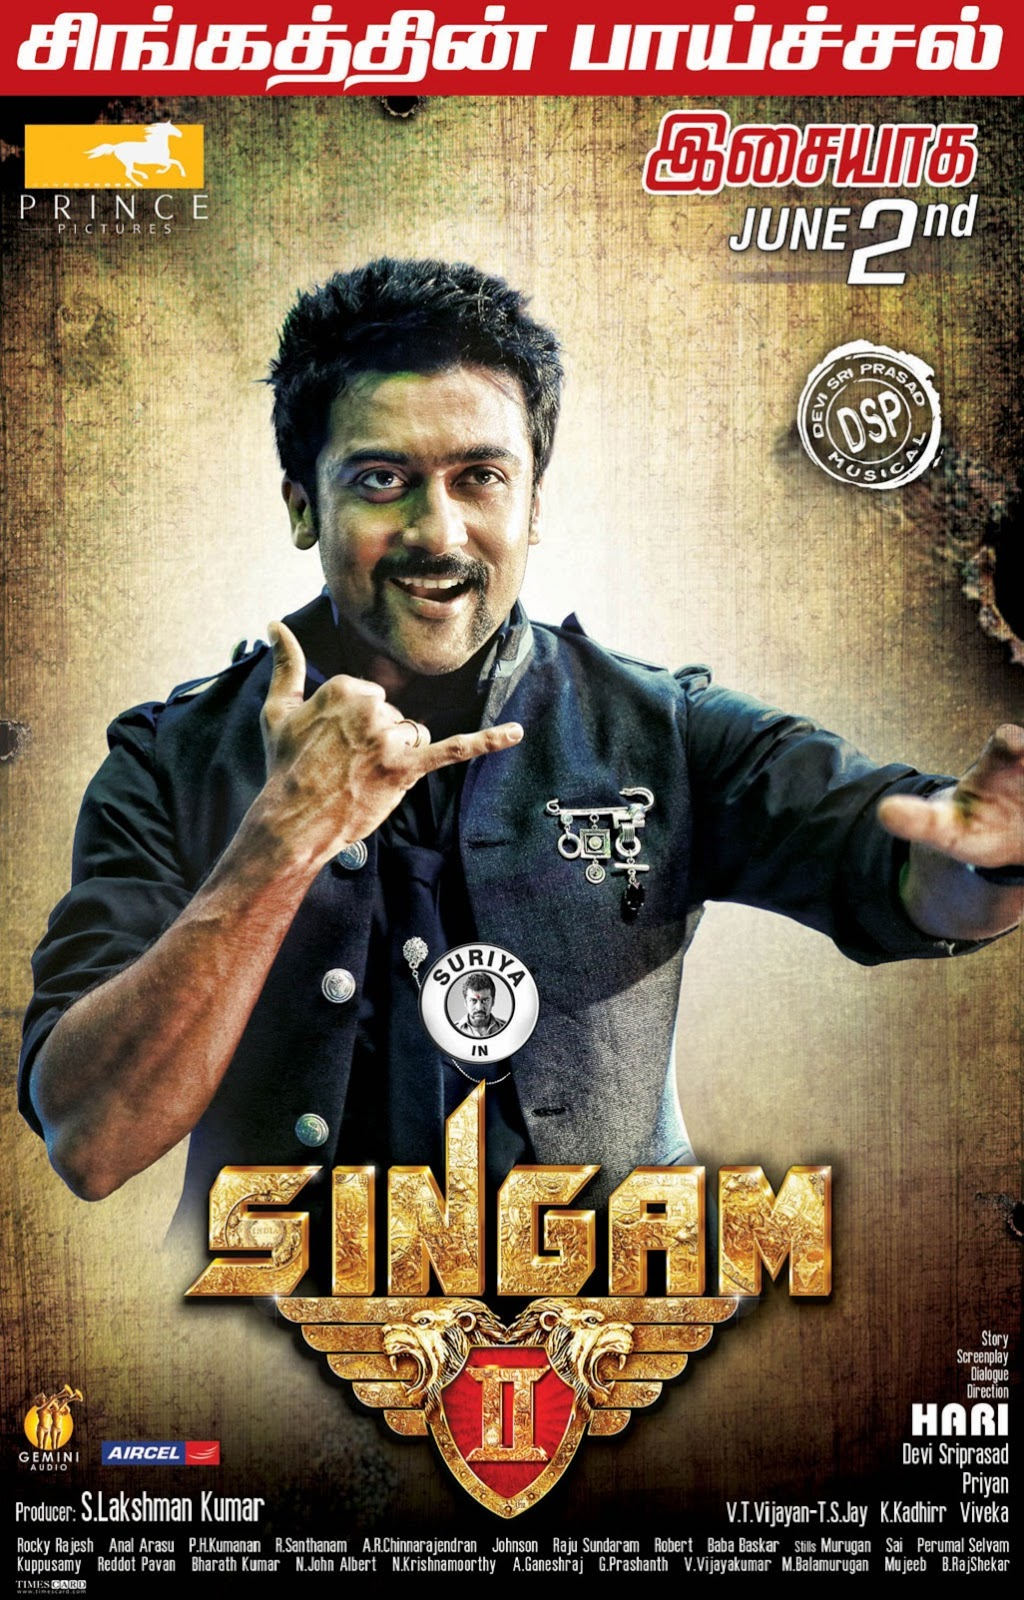 Tamil movie singam 2 hd video songs free download - Call of